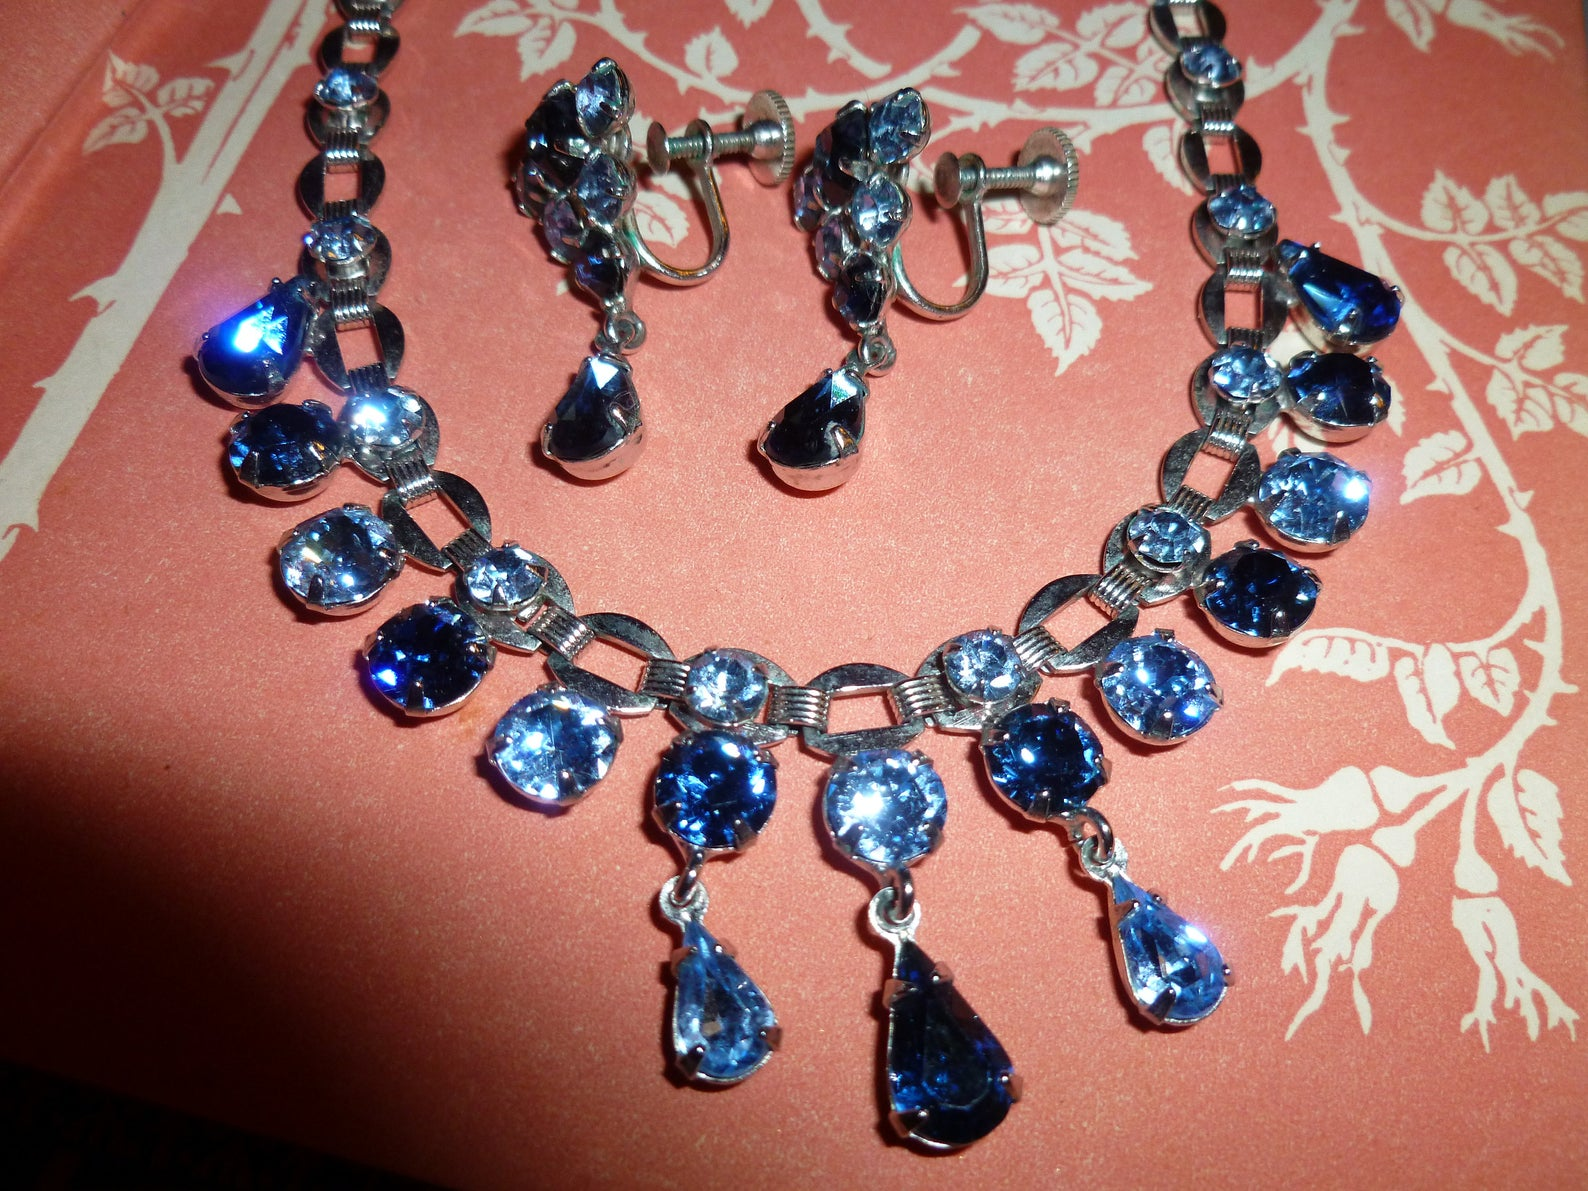 This is a necklace and earring set. Big blue rhinestones are hanging off both the pieces of jewelry.